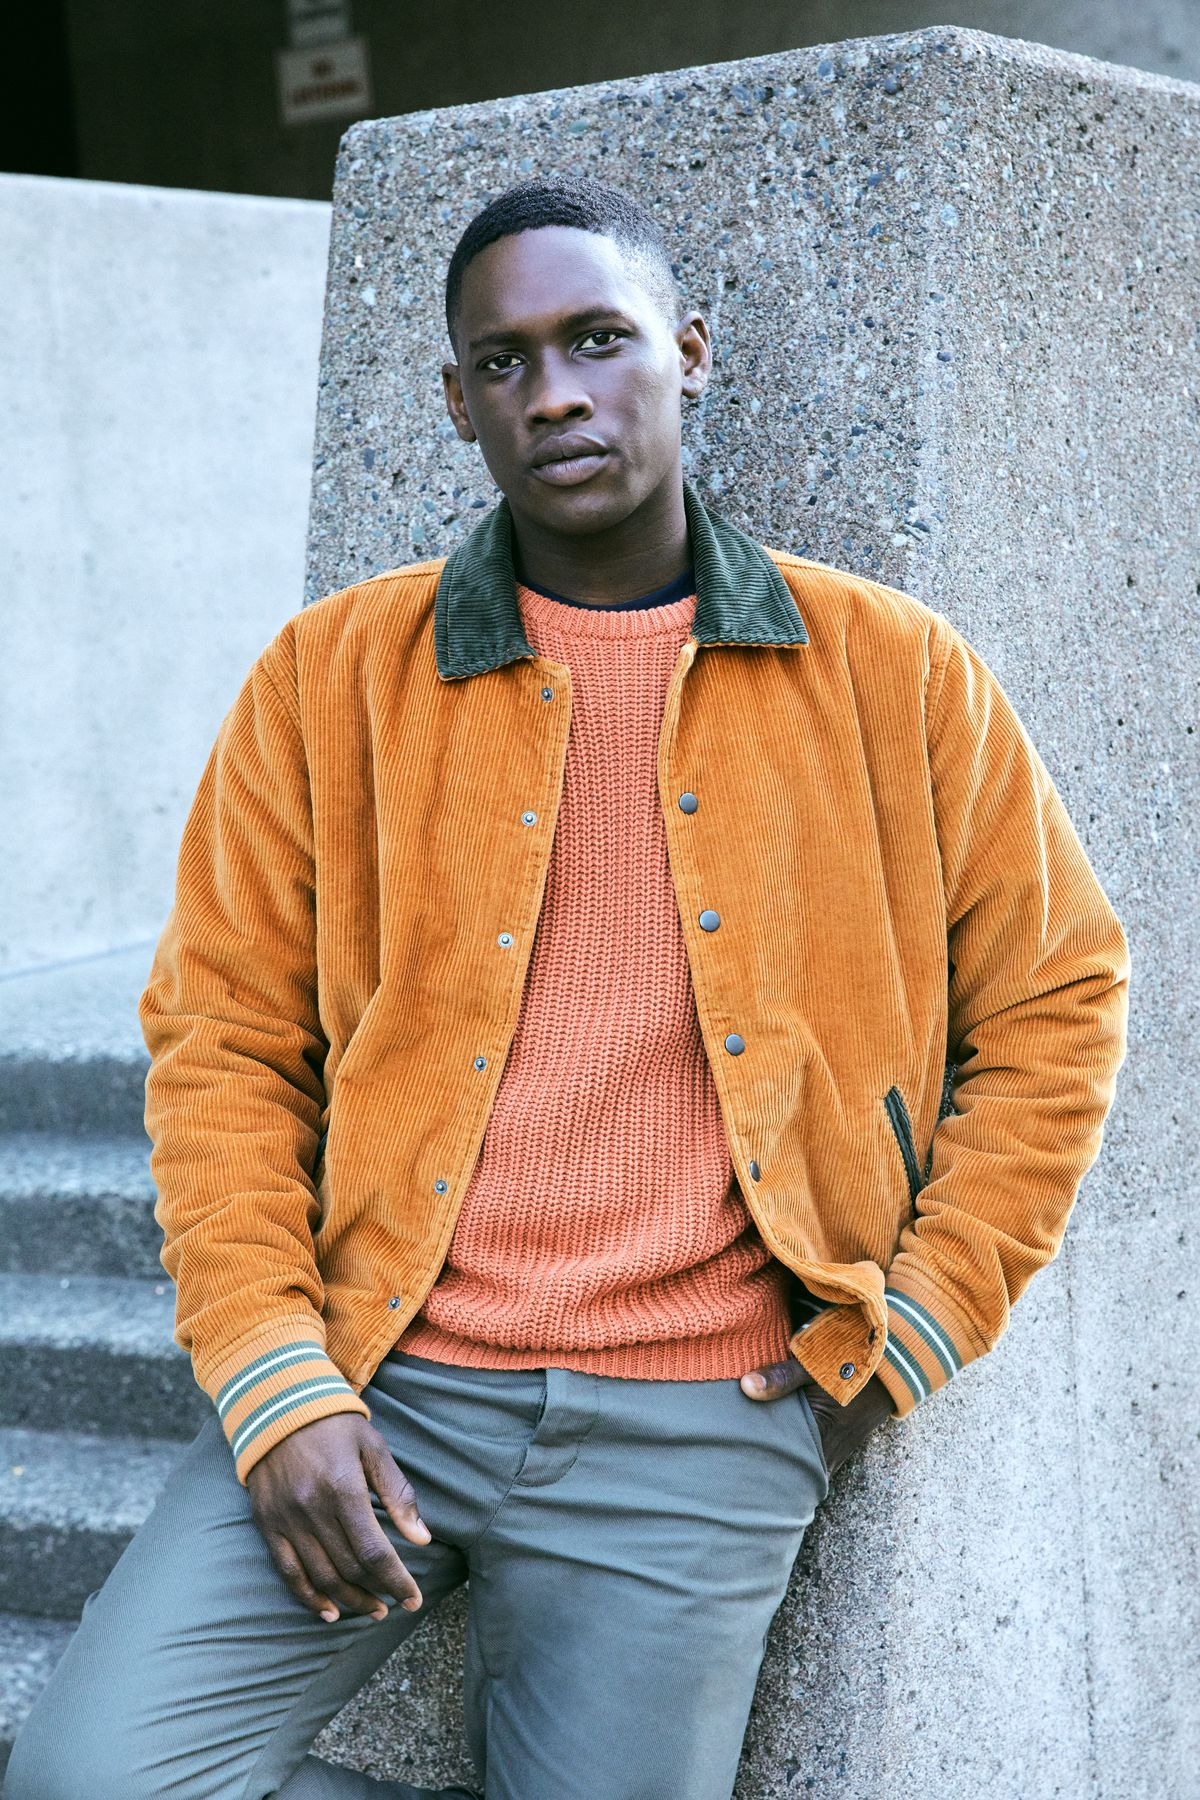 A male model poses outside a concrete building wearing an orange sweater, a corduroy jacket, and gray pants.